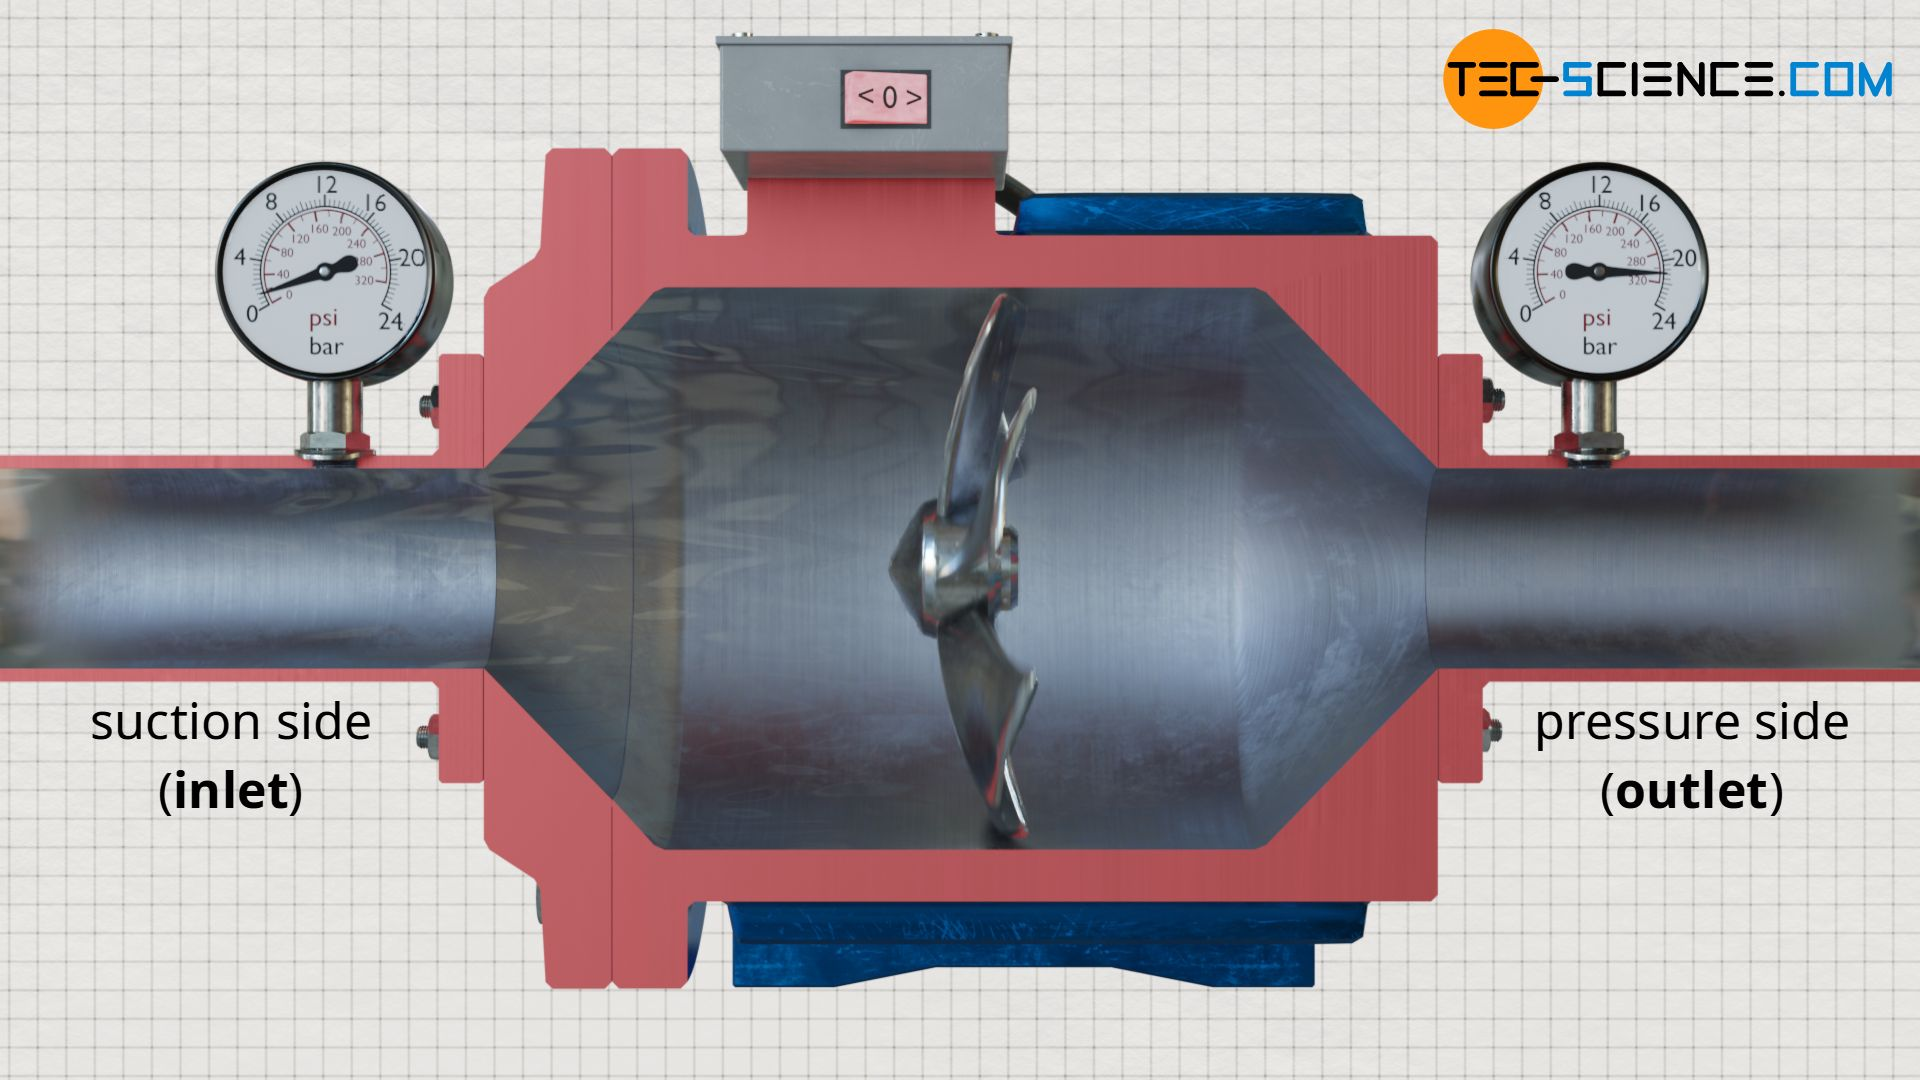 Principle of pressure increase in pumps by means of rotating impeller